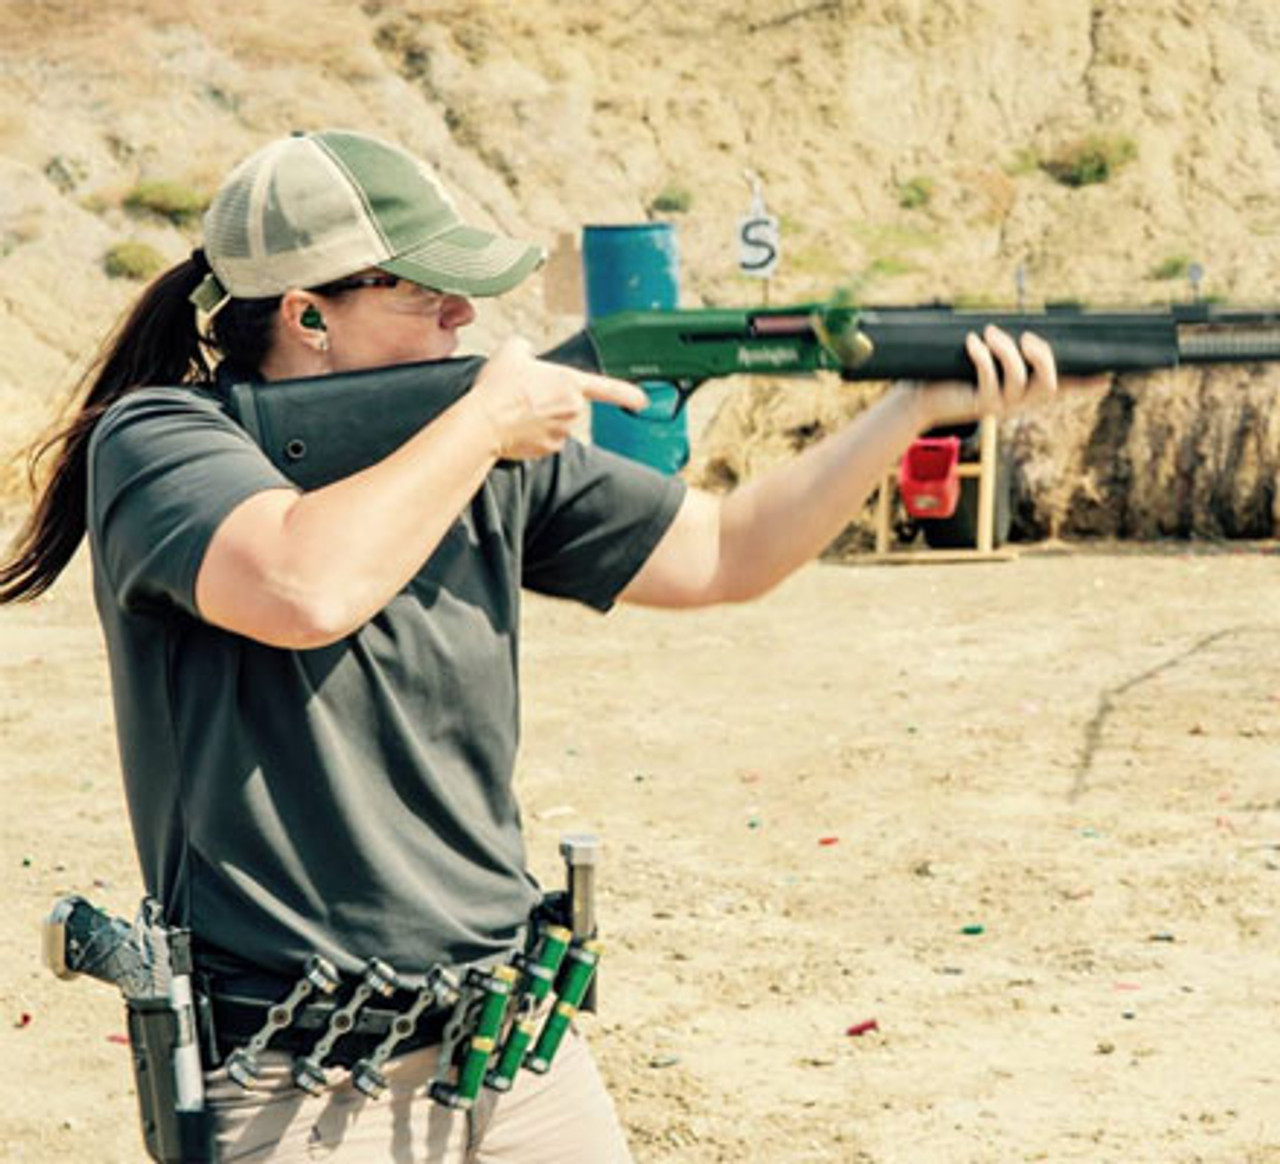 Beginner to Advanced Sporting Clays Lesson with Sandra Watts